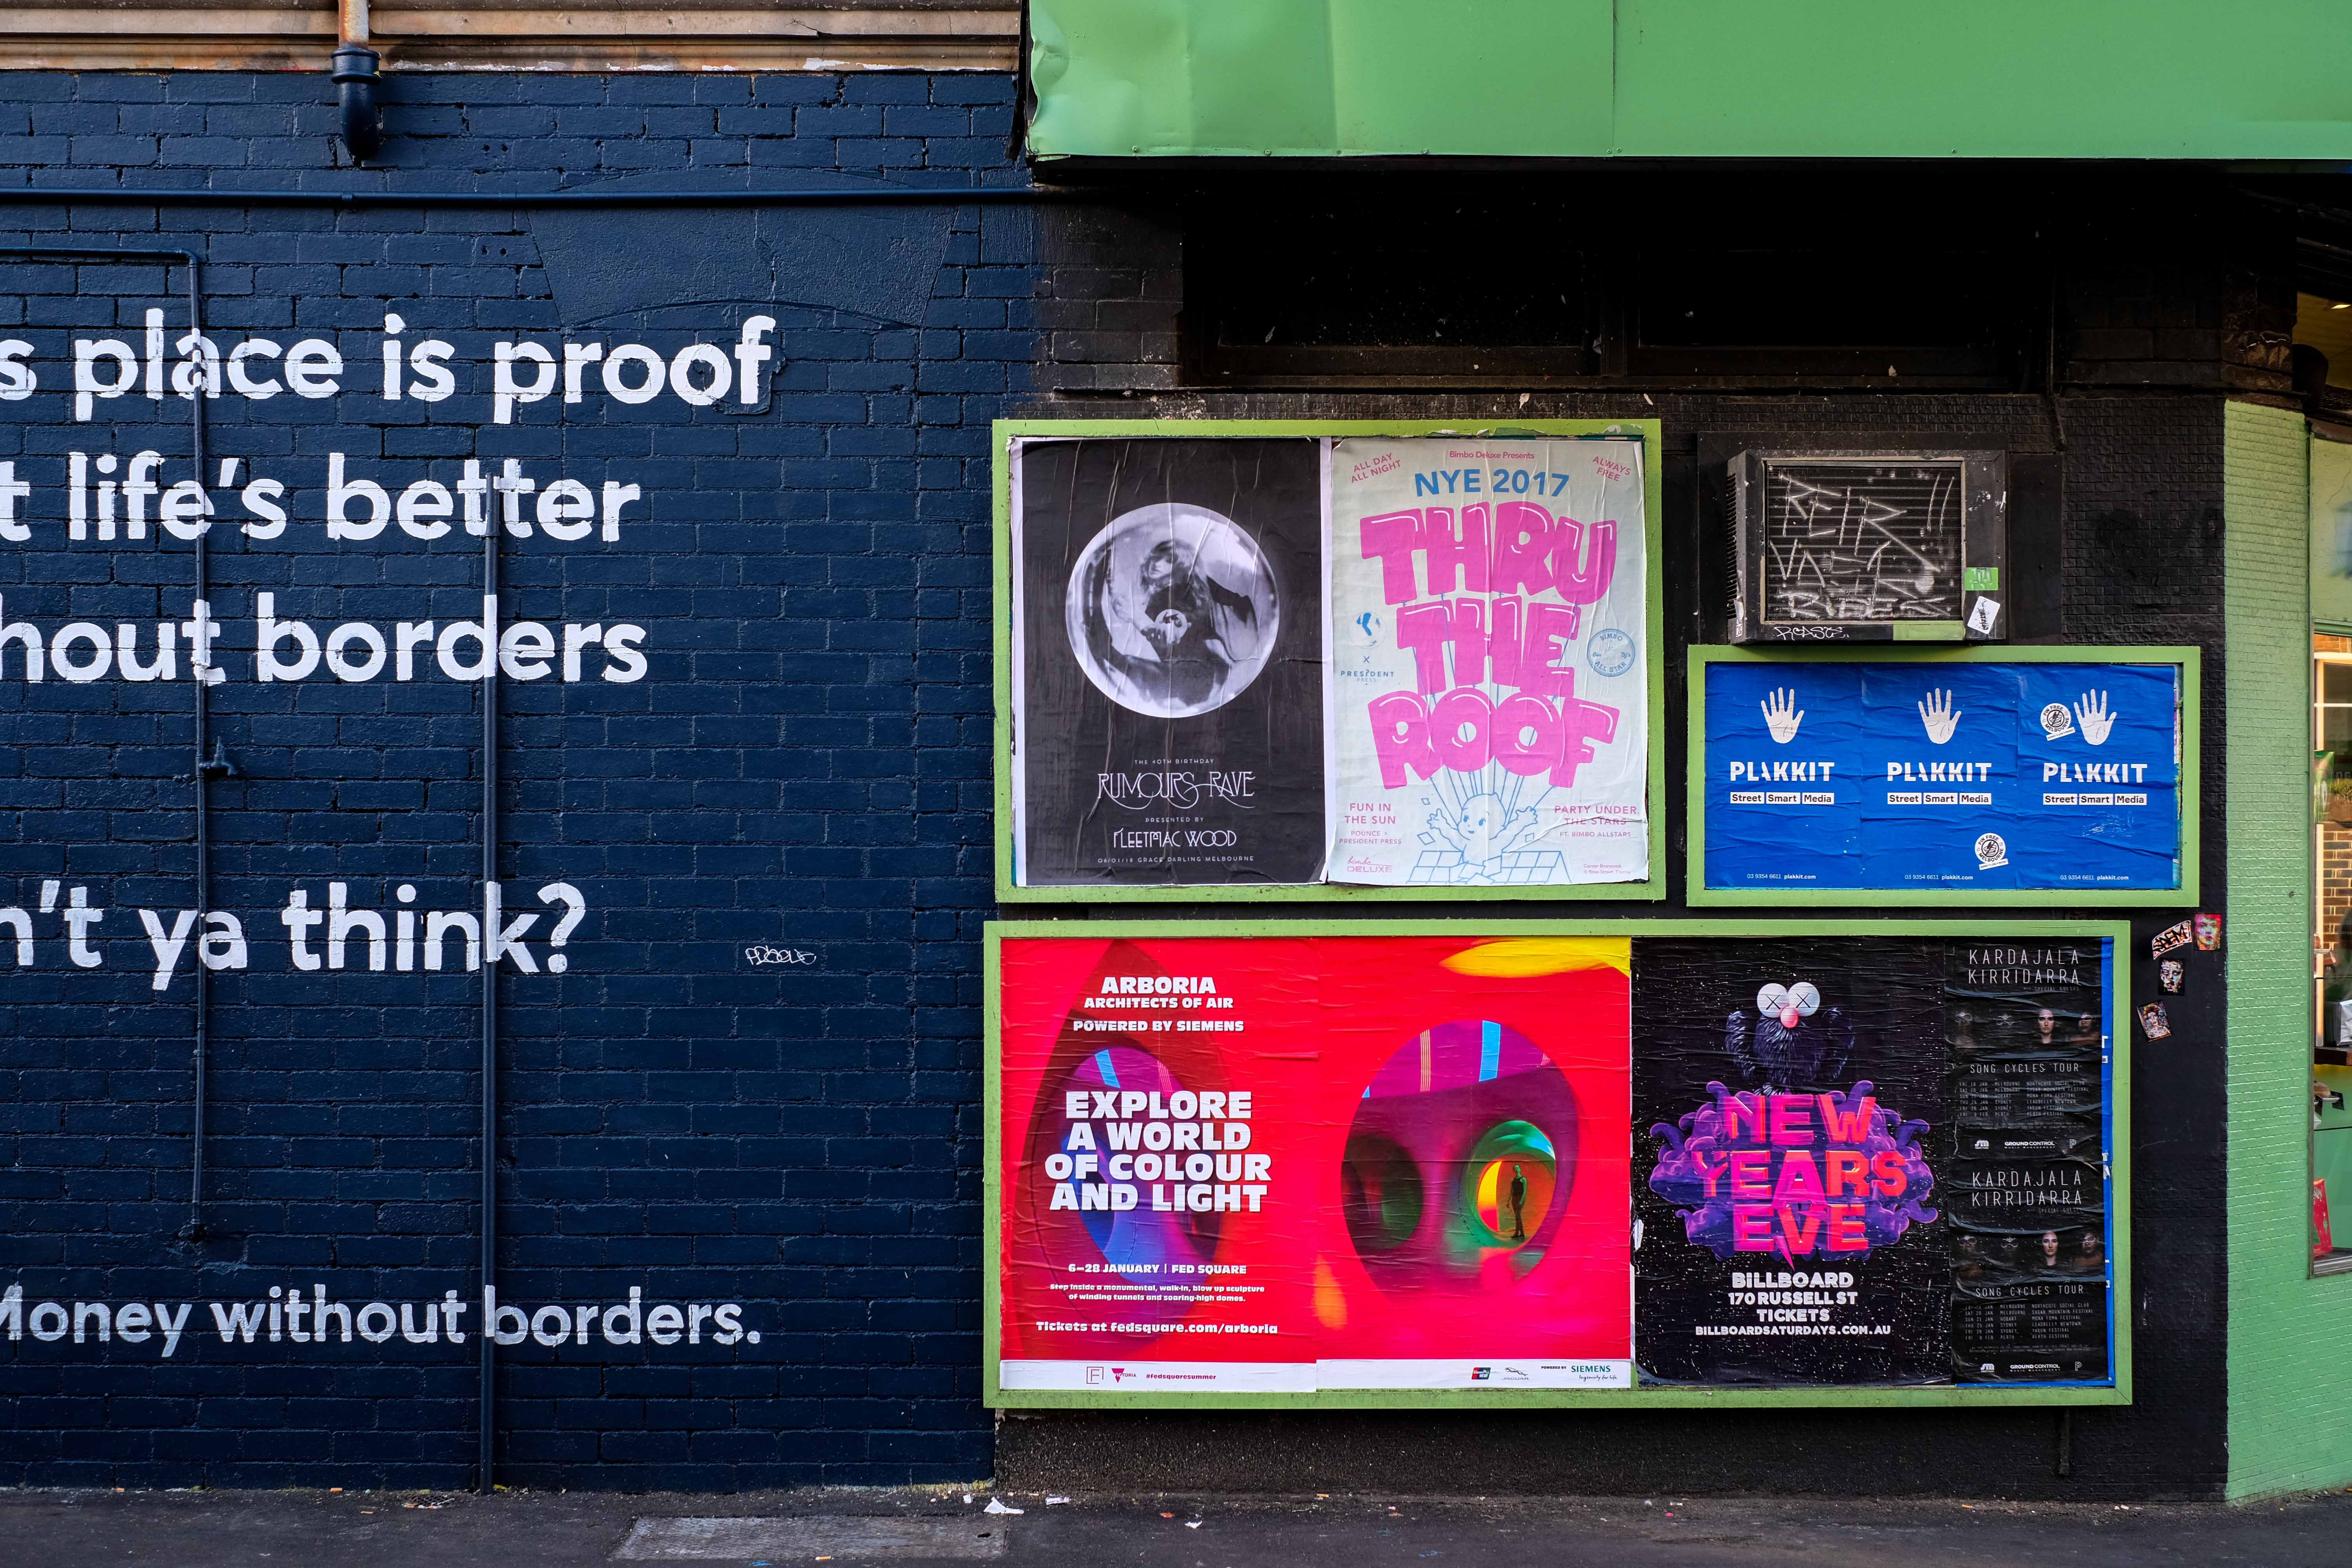 posters mounted on building wall during daytime